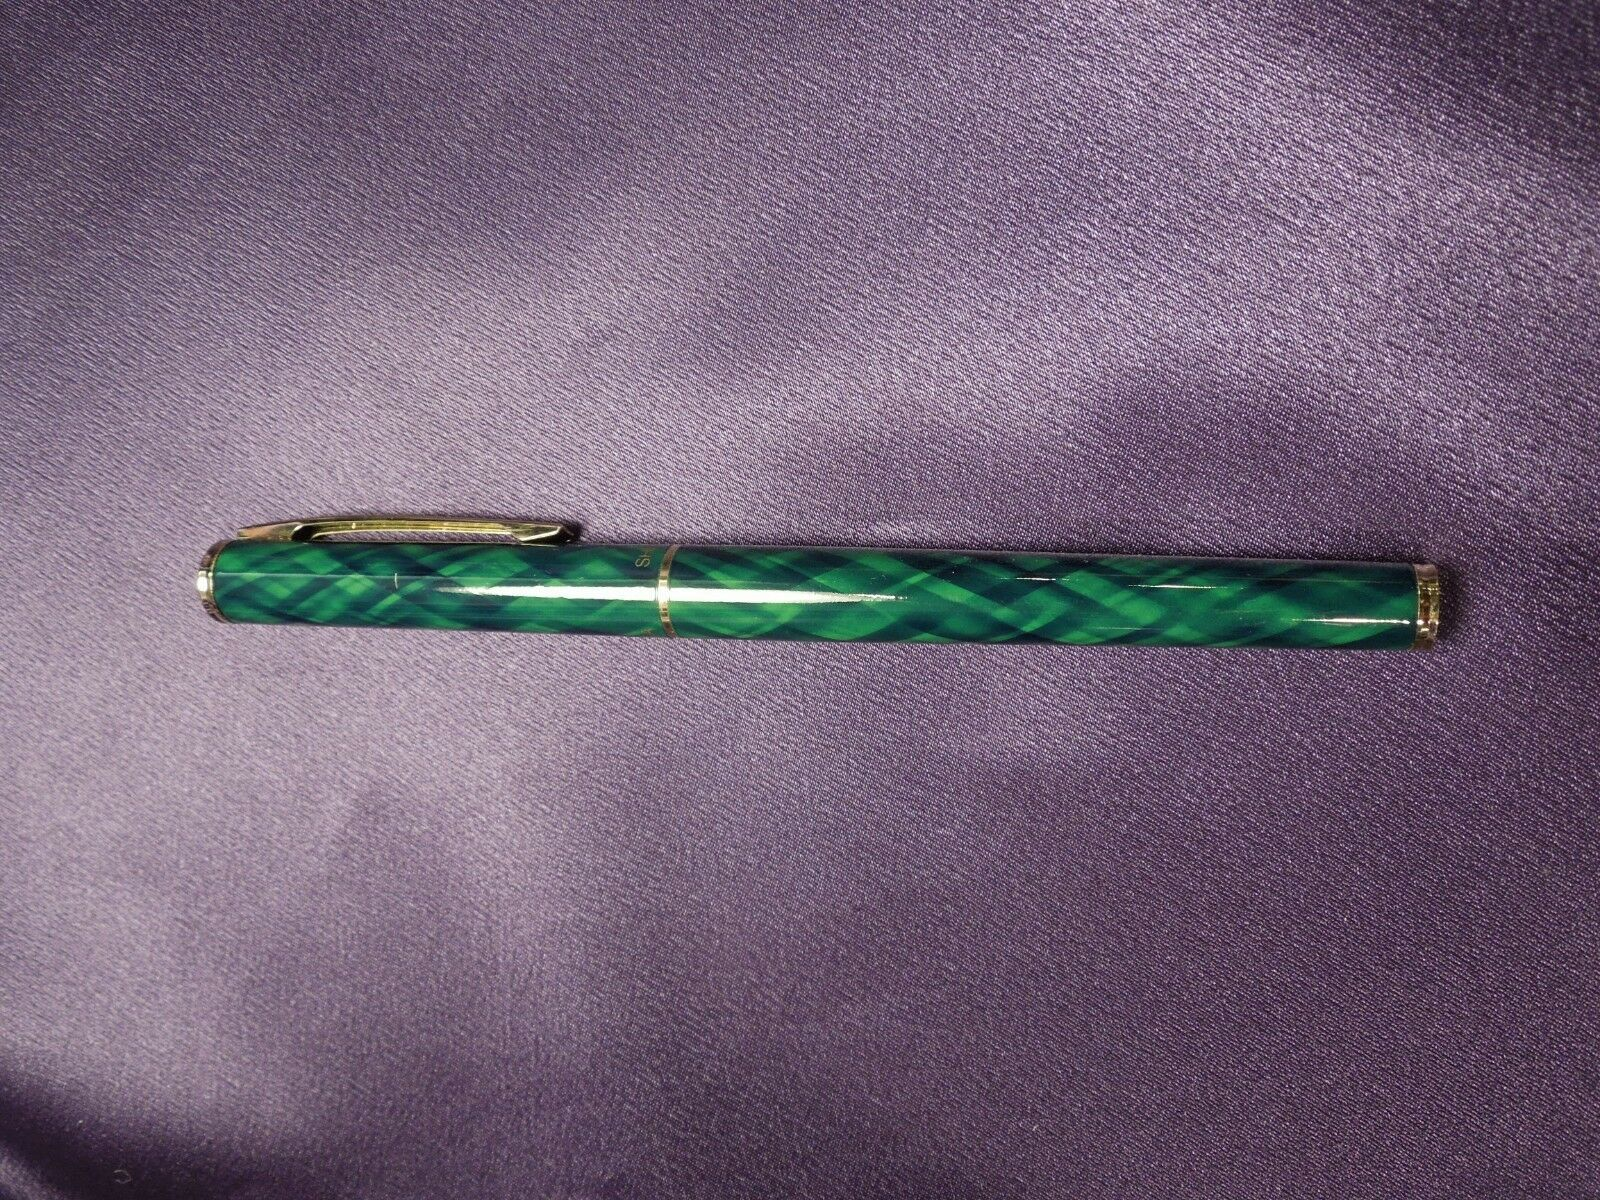 Green & Gold Sheaffer Ballpoint Pen in Original Red and Gold Box image 3